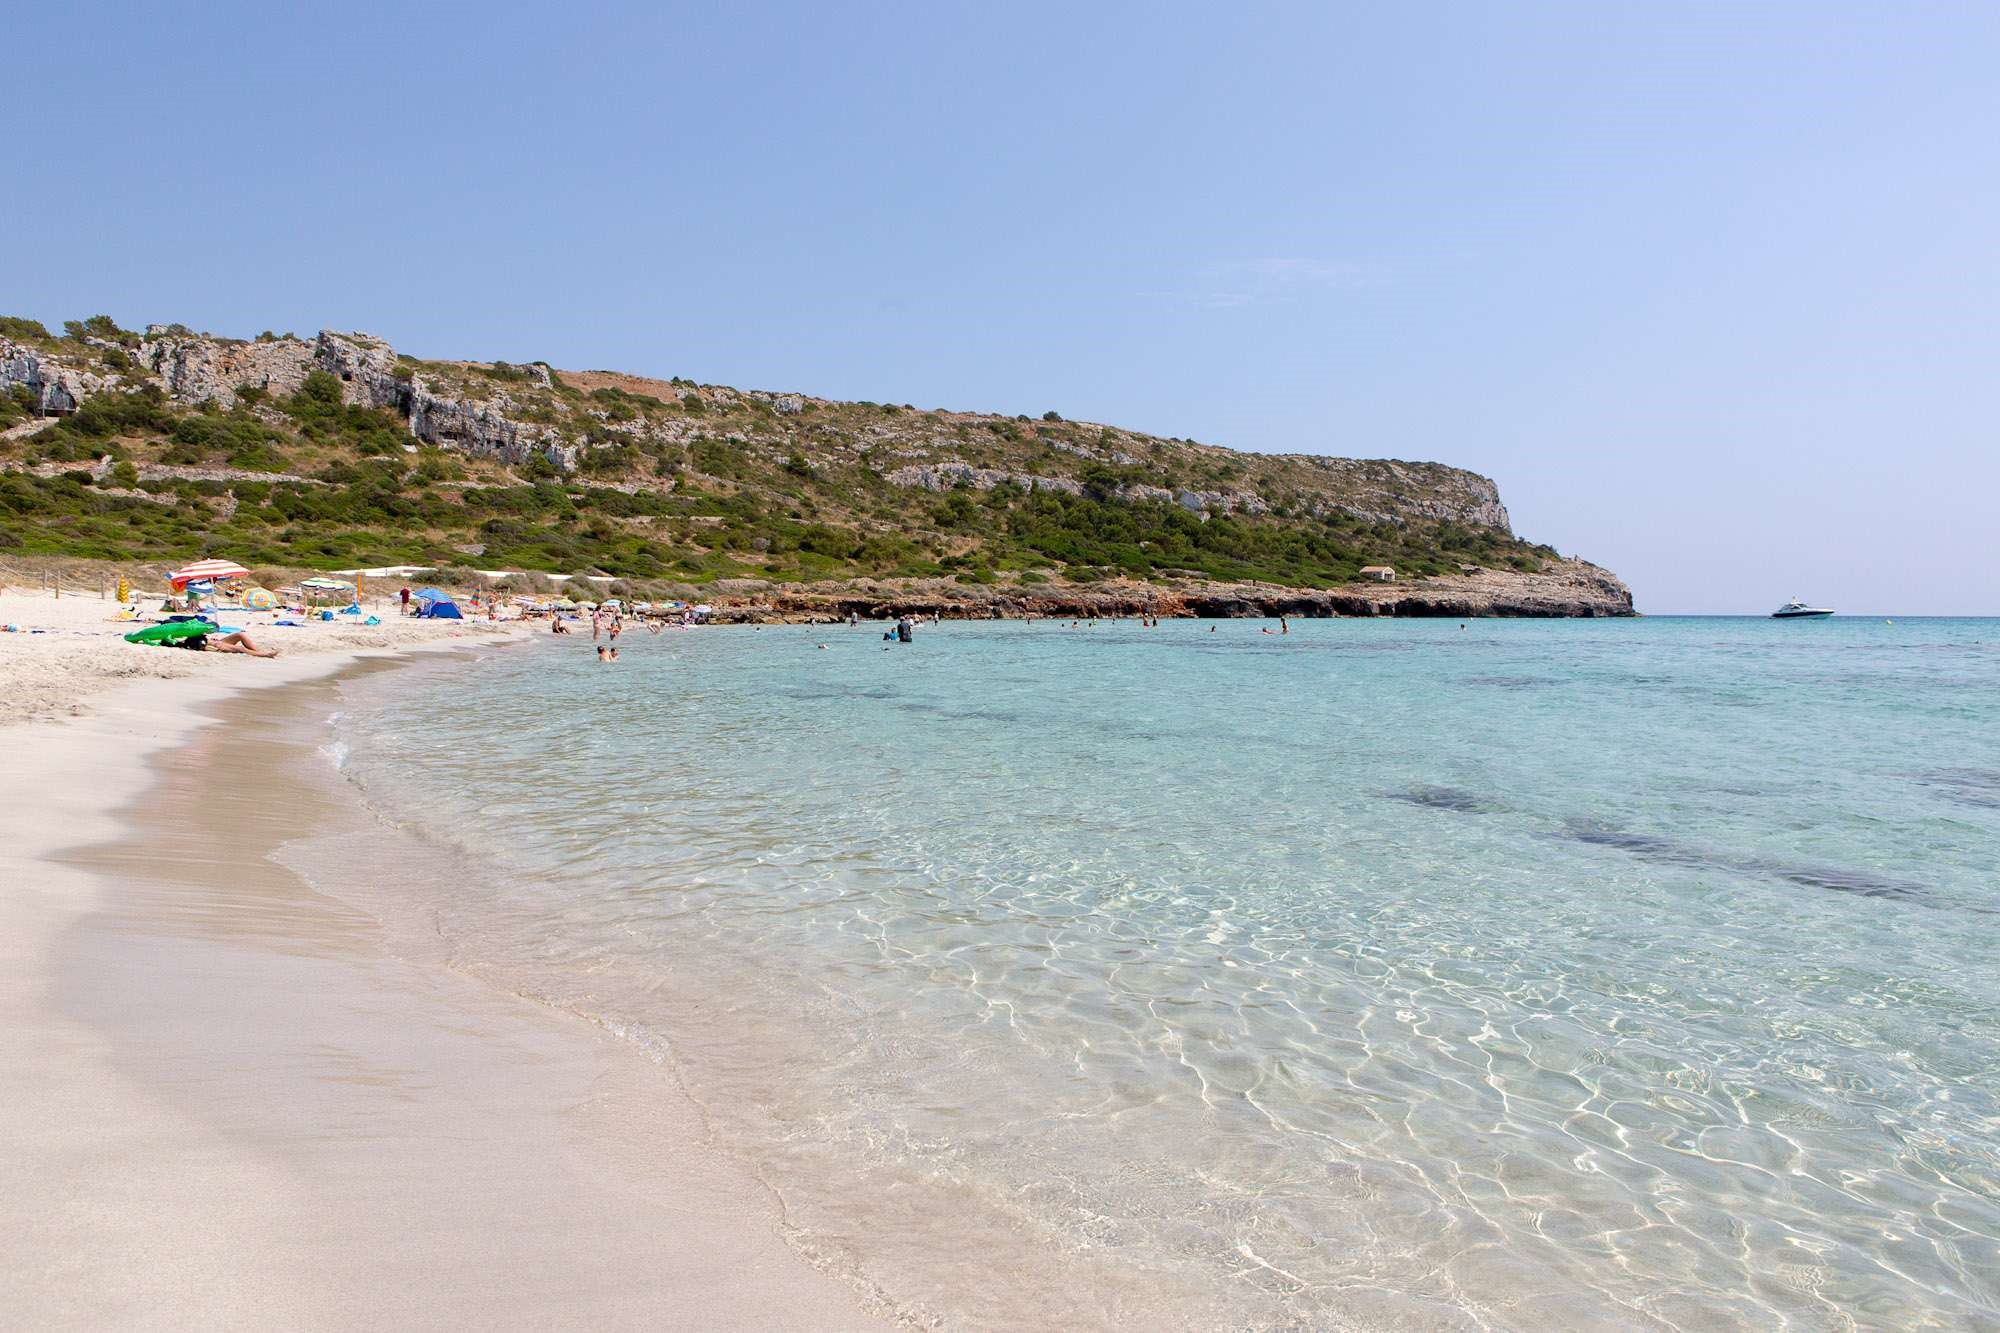 What could you visit near the Camping Son Bou in Menorca ...